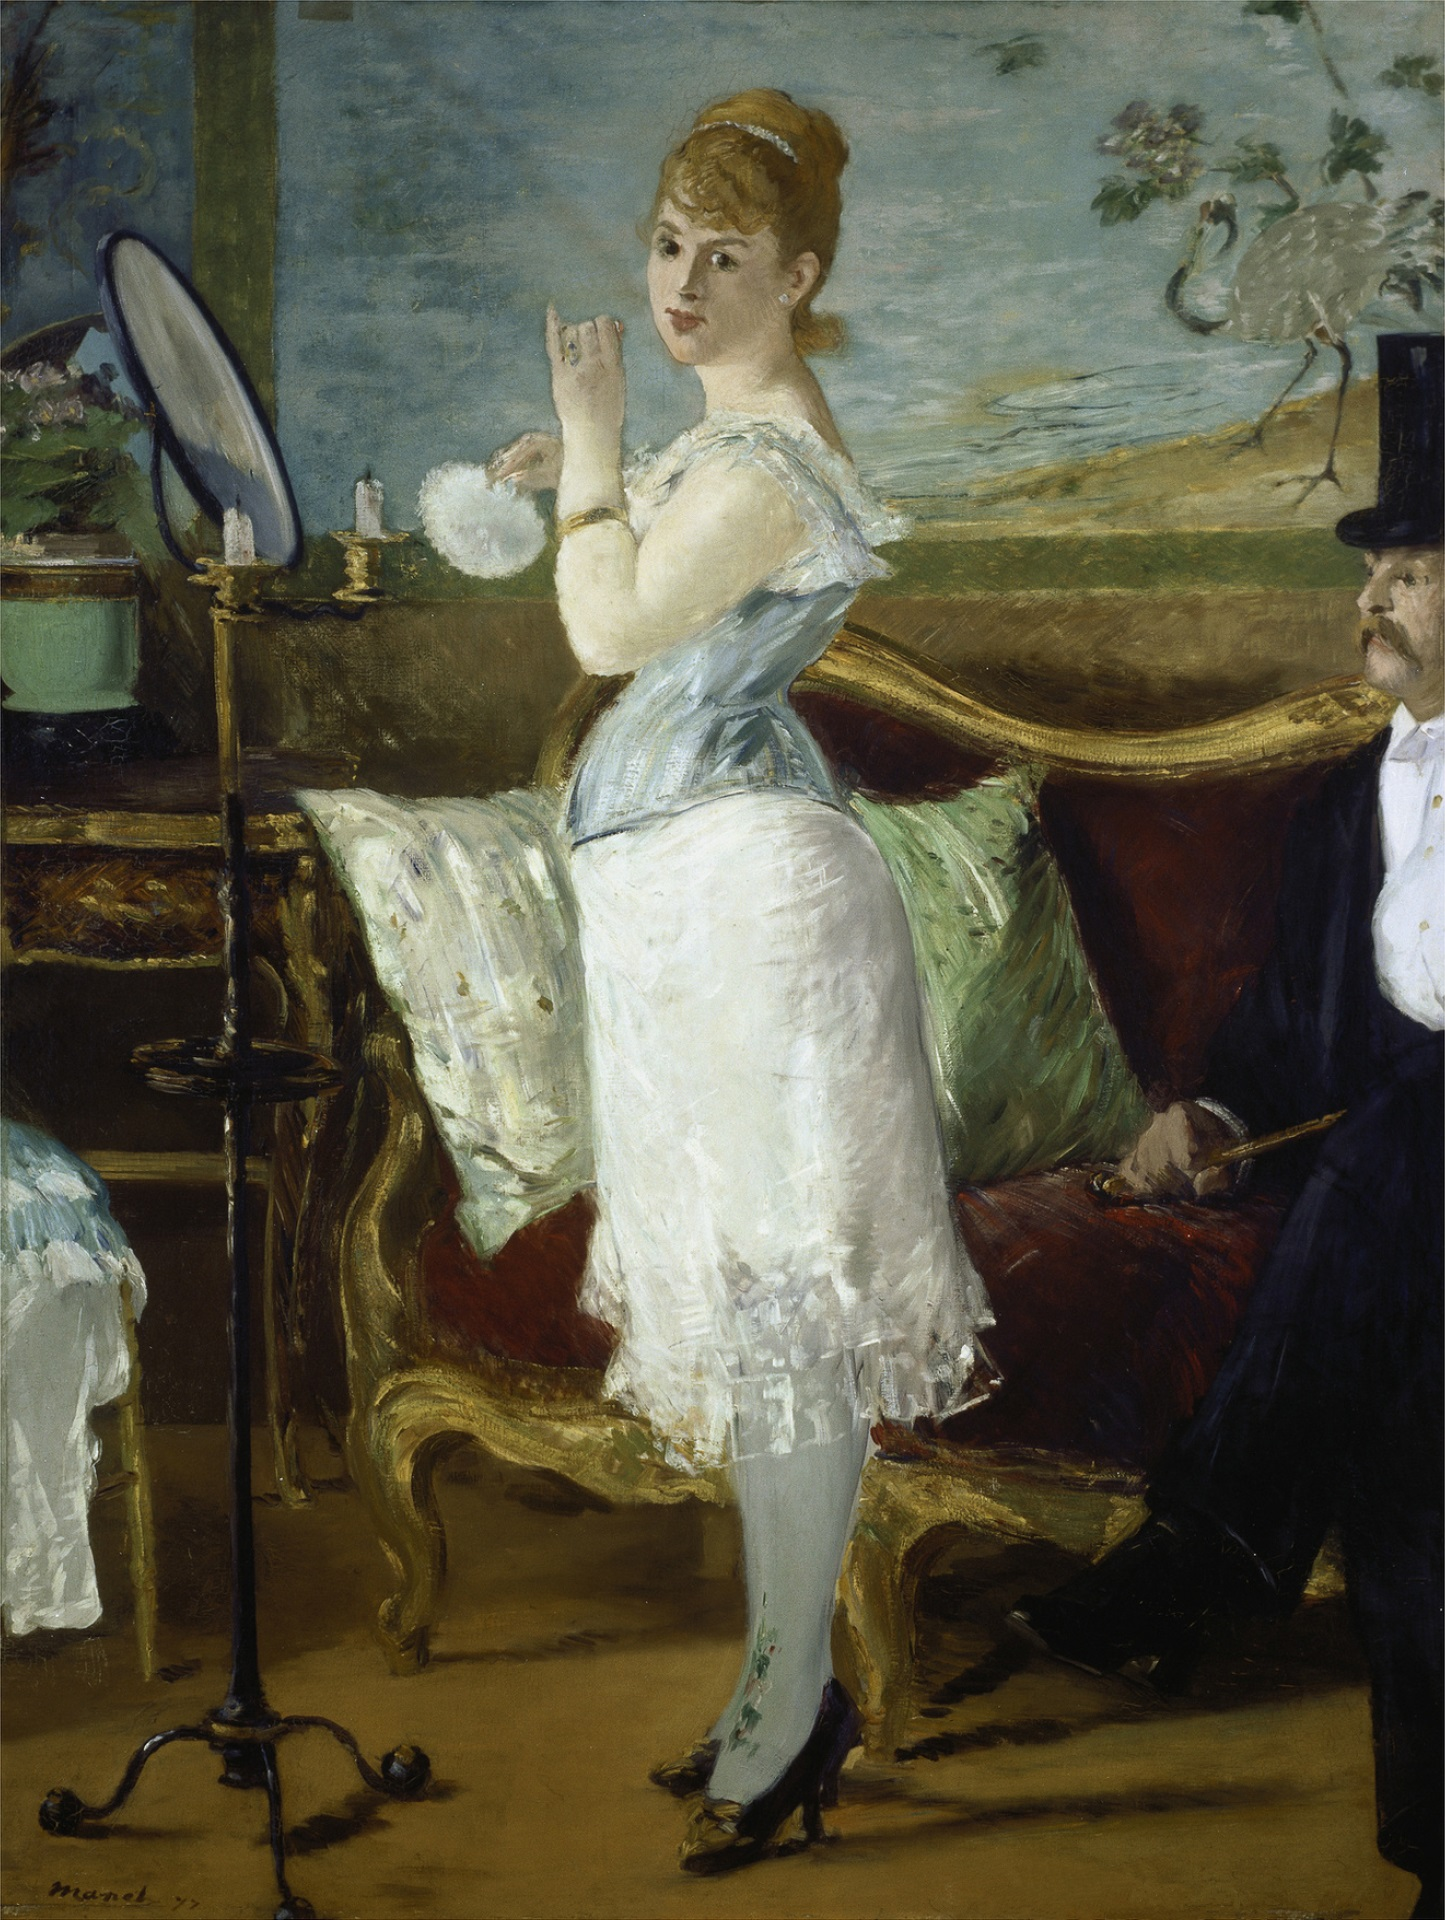 https://upload.wikimedia.org/wikipedia/commons/e/ed/Edouard_Manet_037.jpg